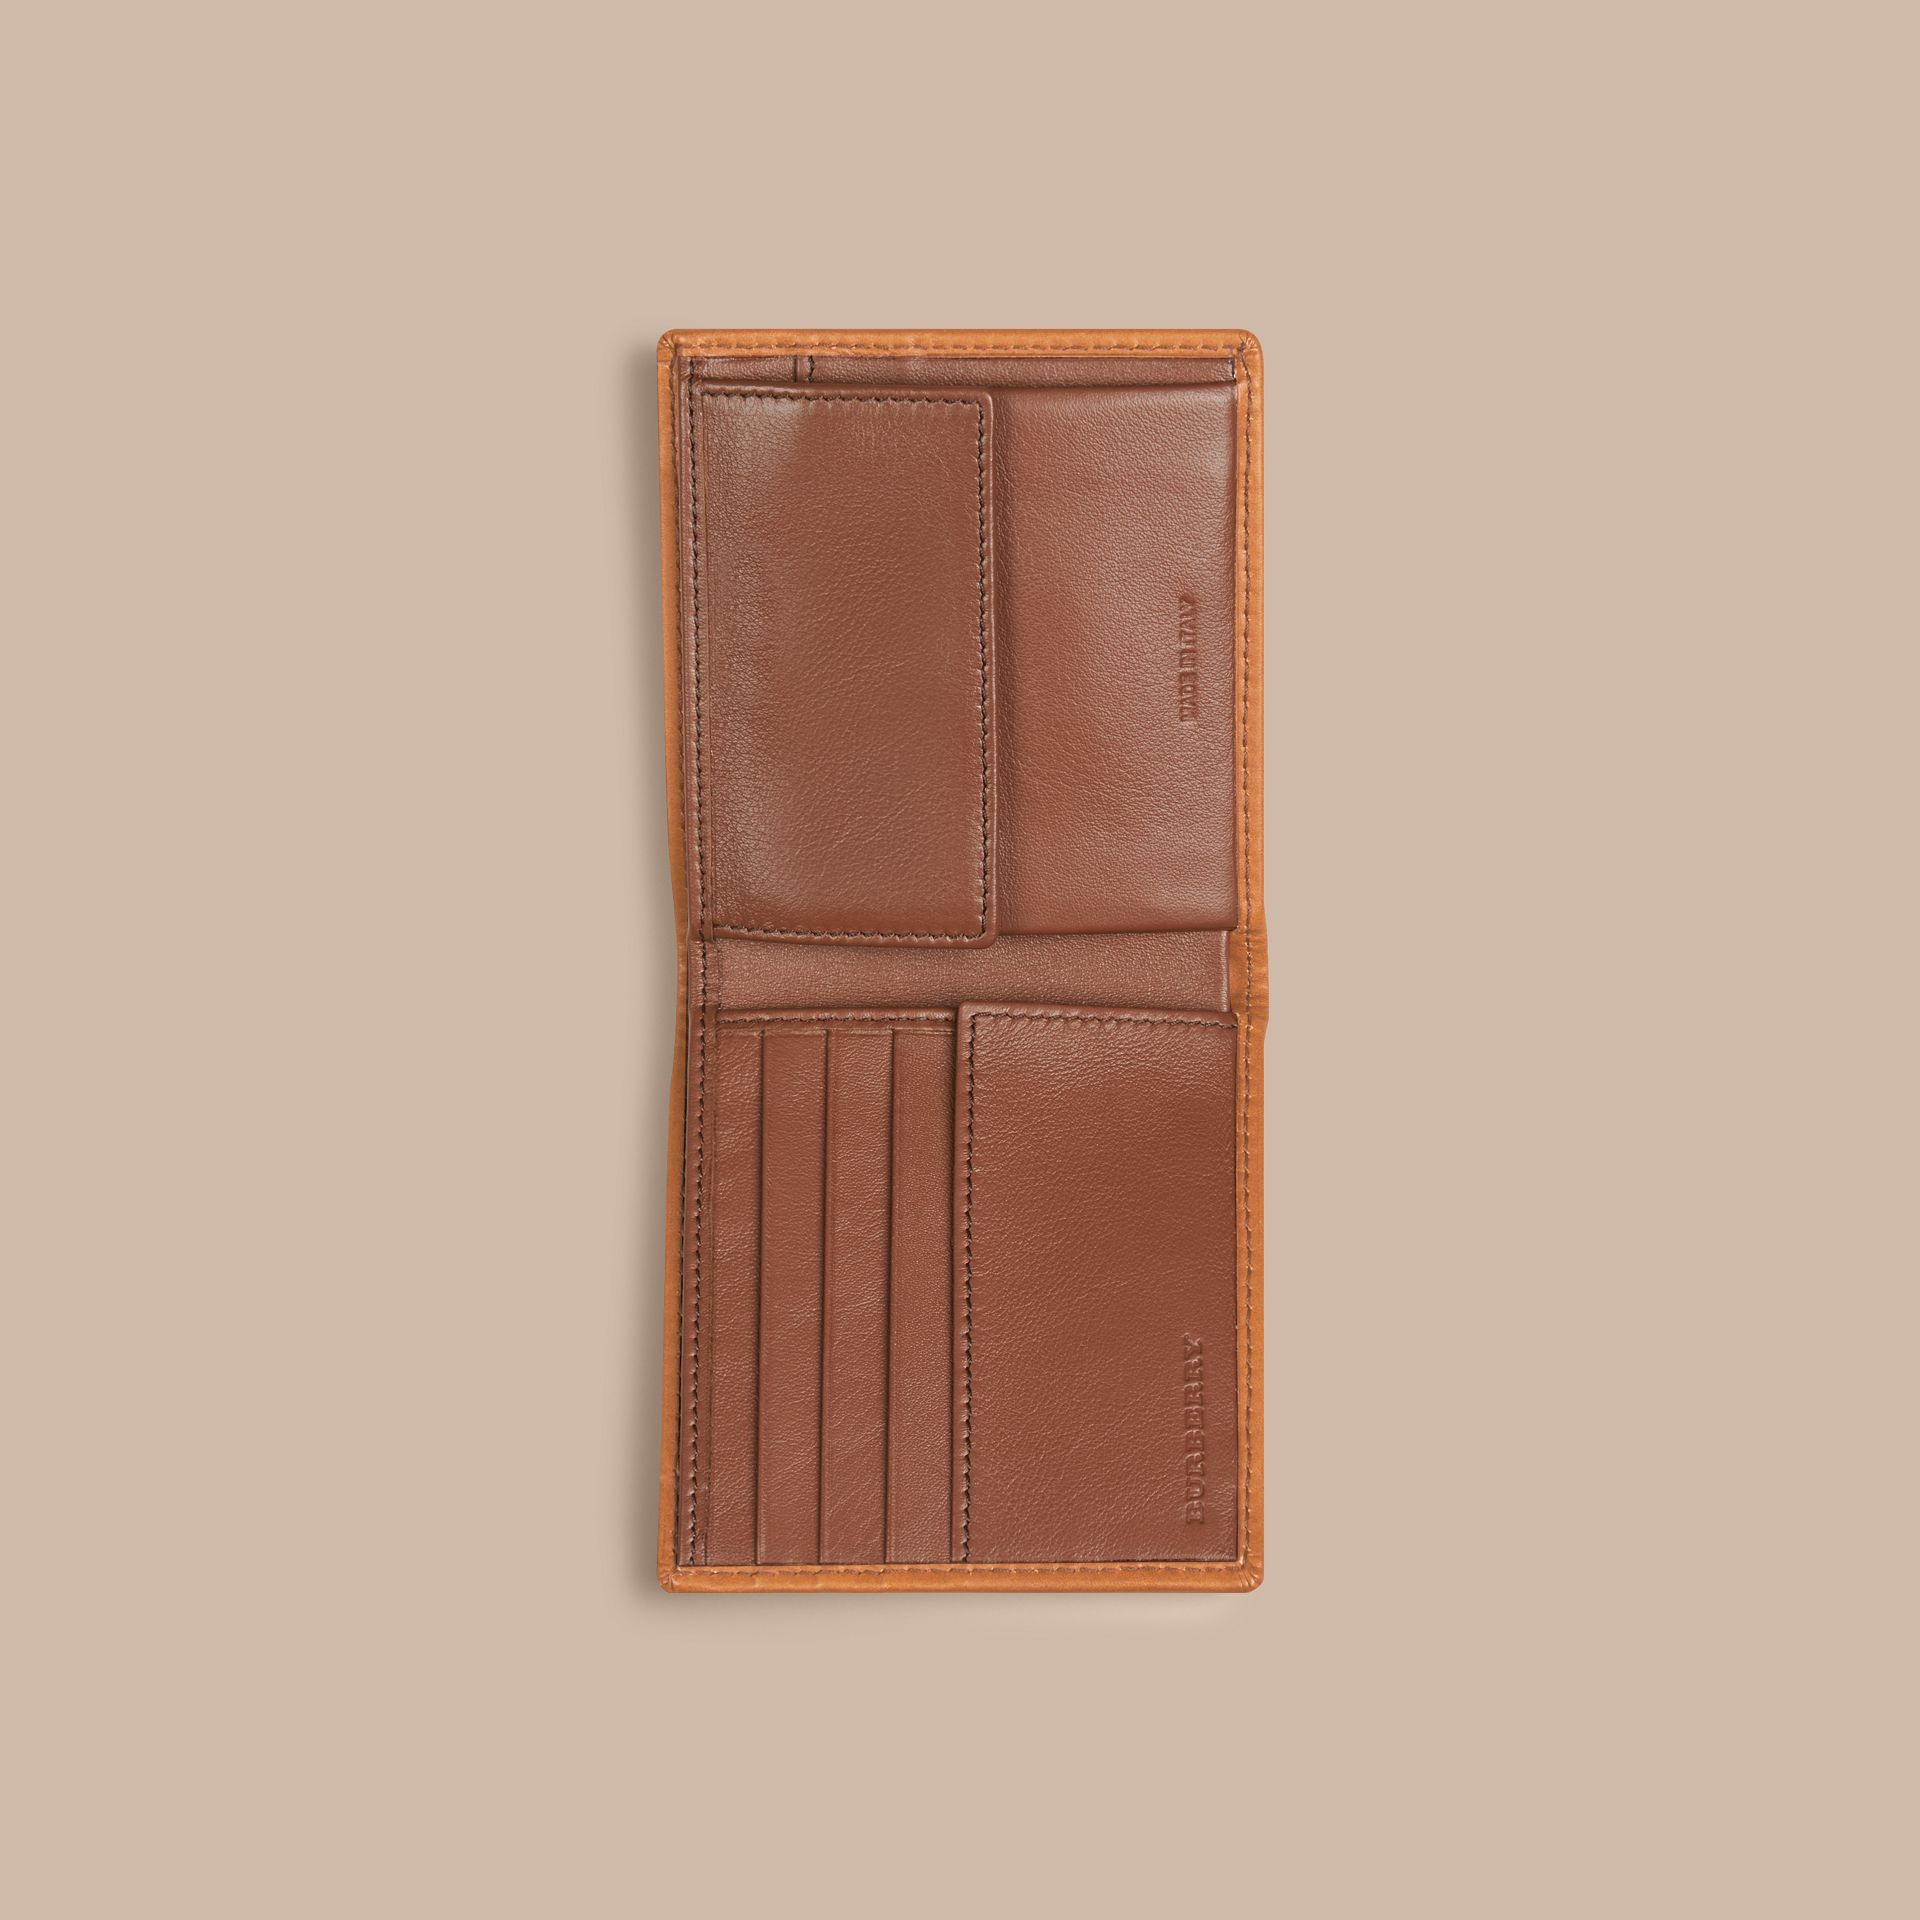 Horseferry Check International Bifold Coin Wallet in Tan - Men | Burberry - gallery image 4